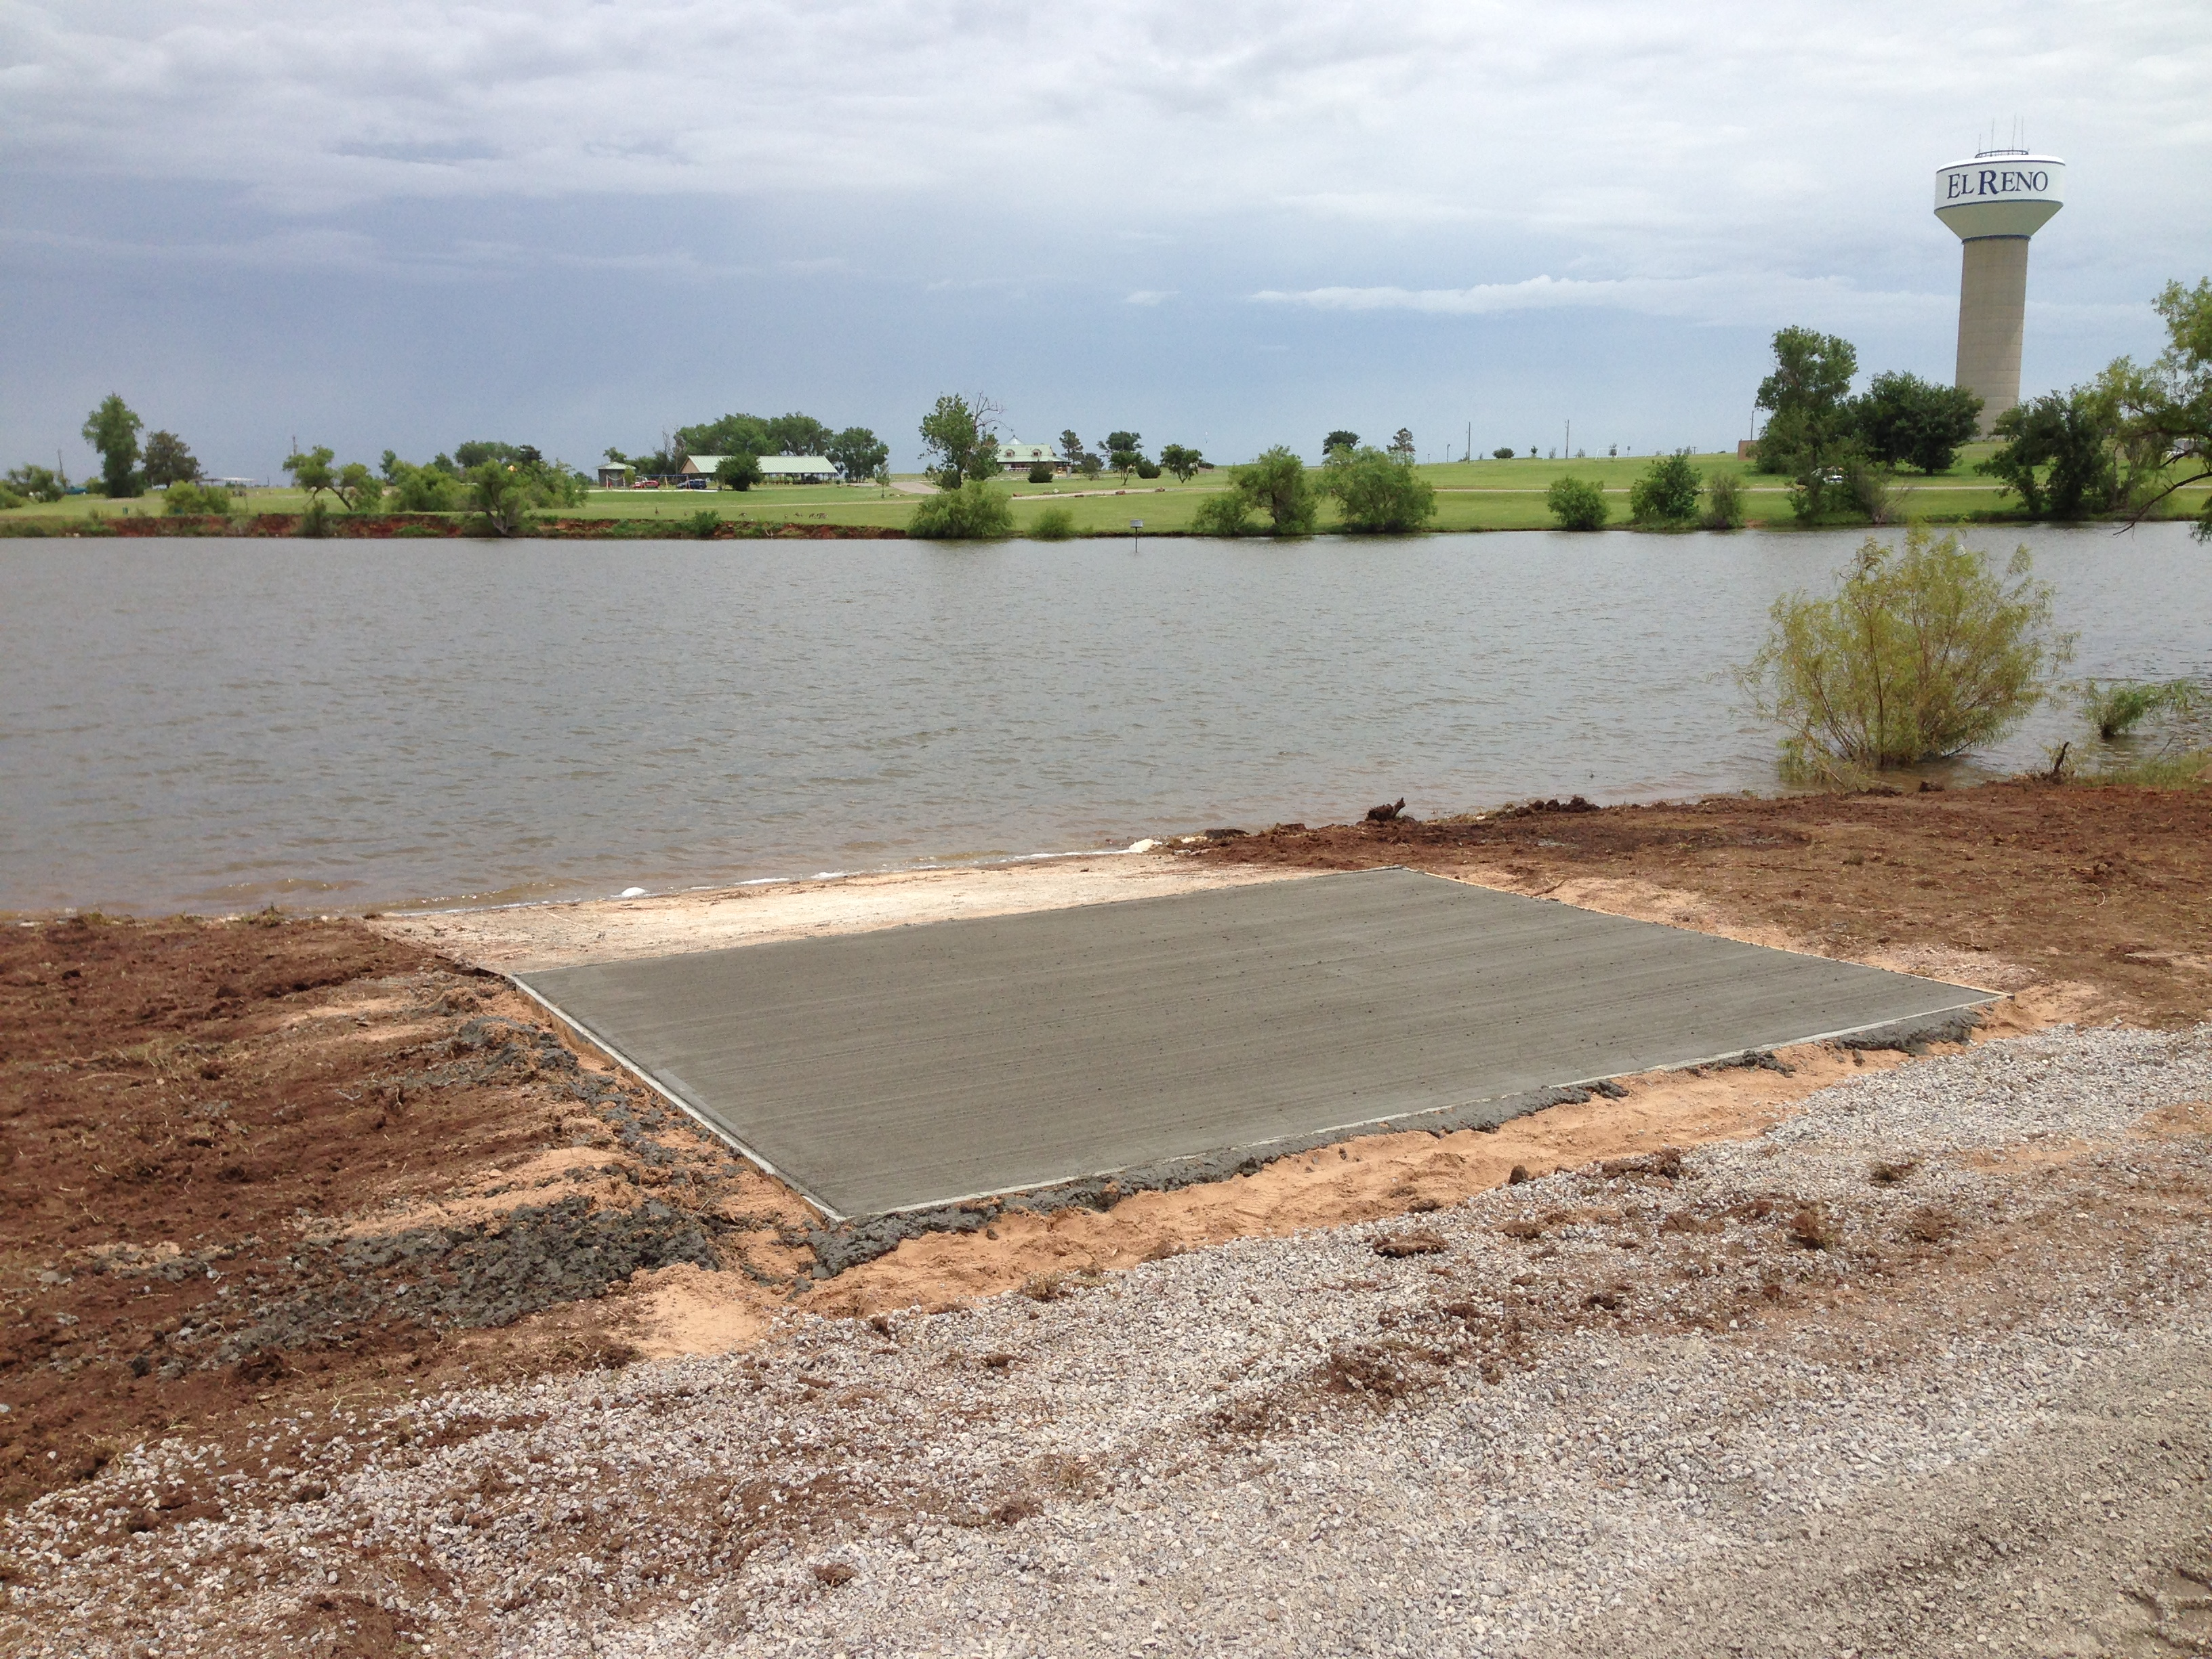 The boat ramp during construction